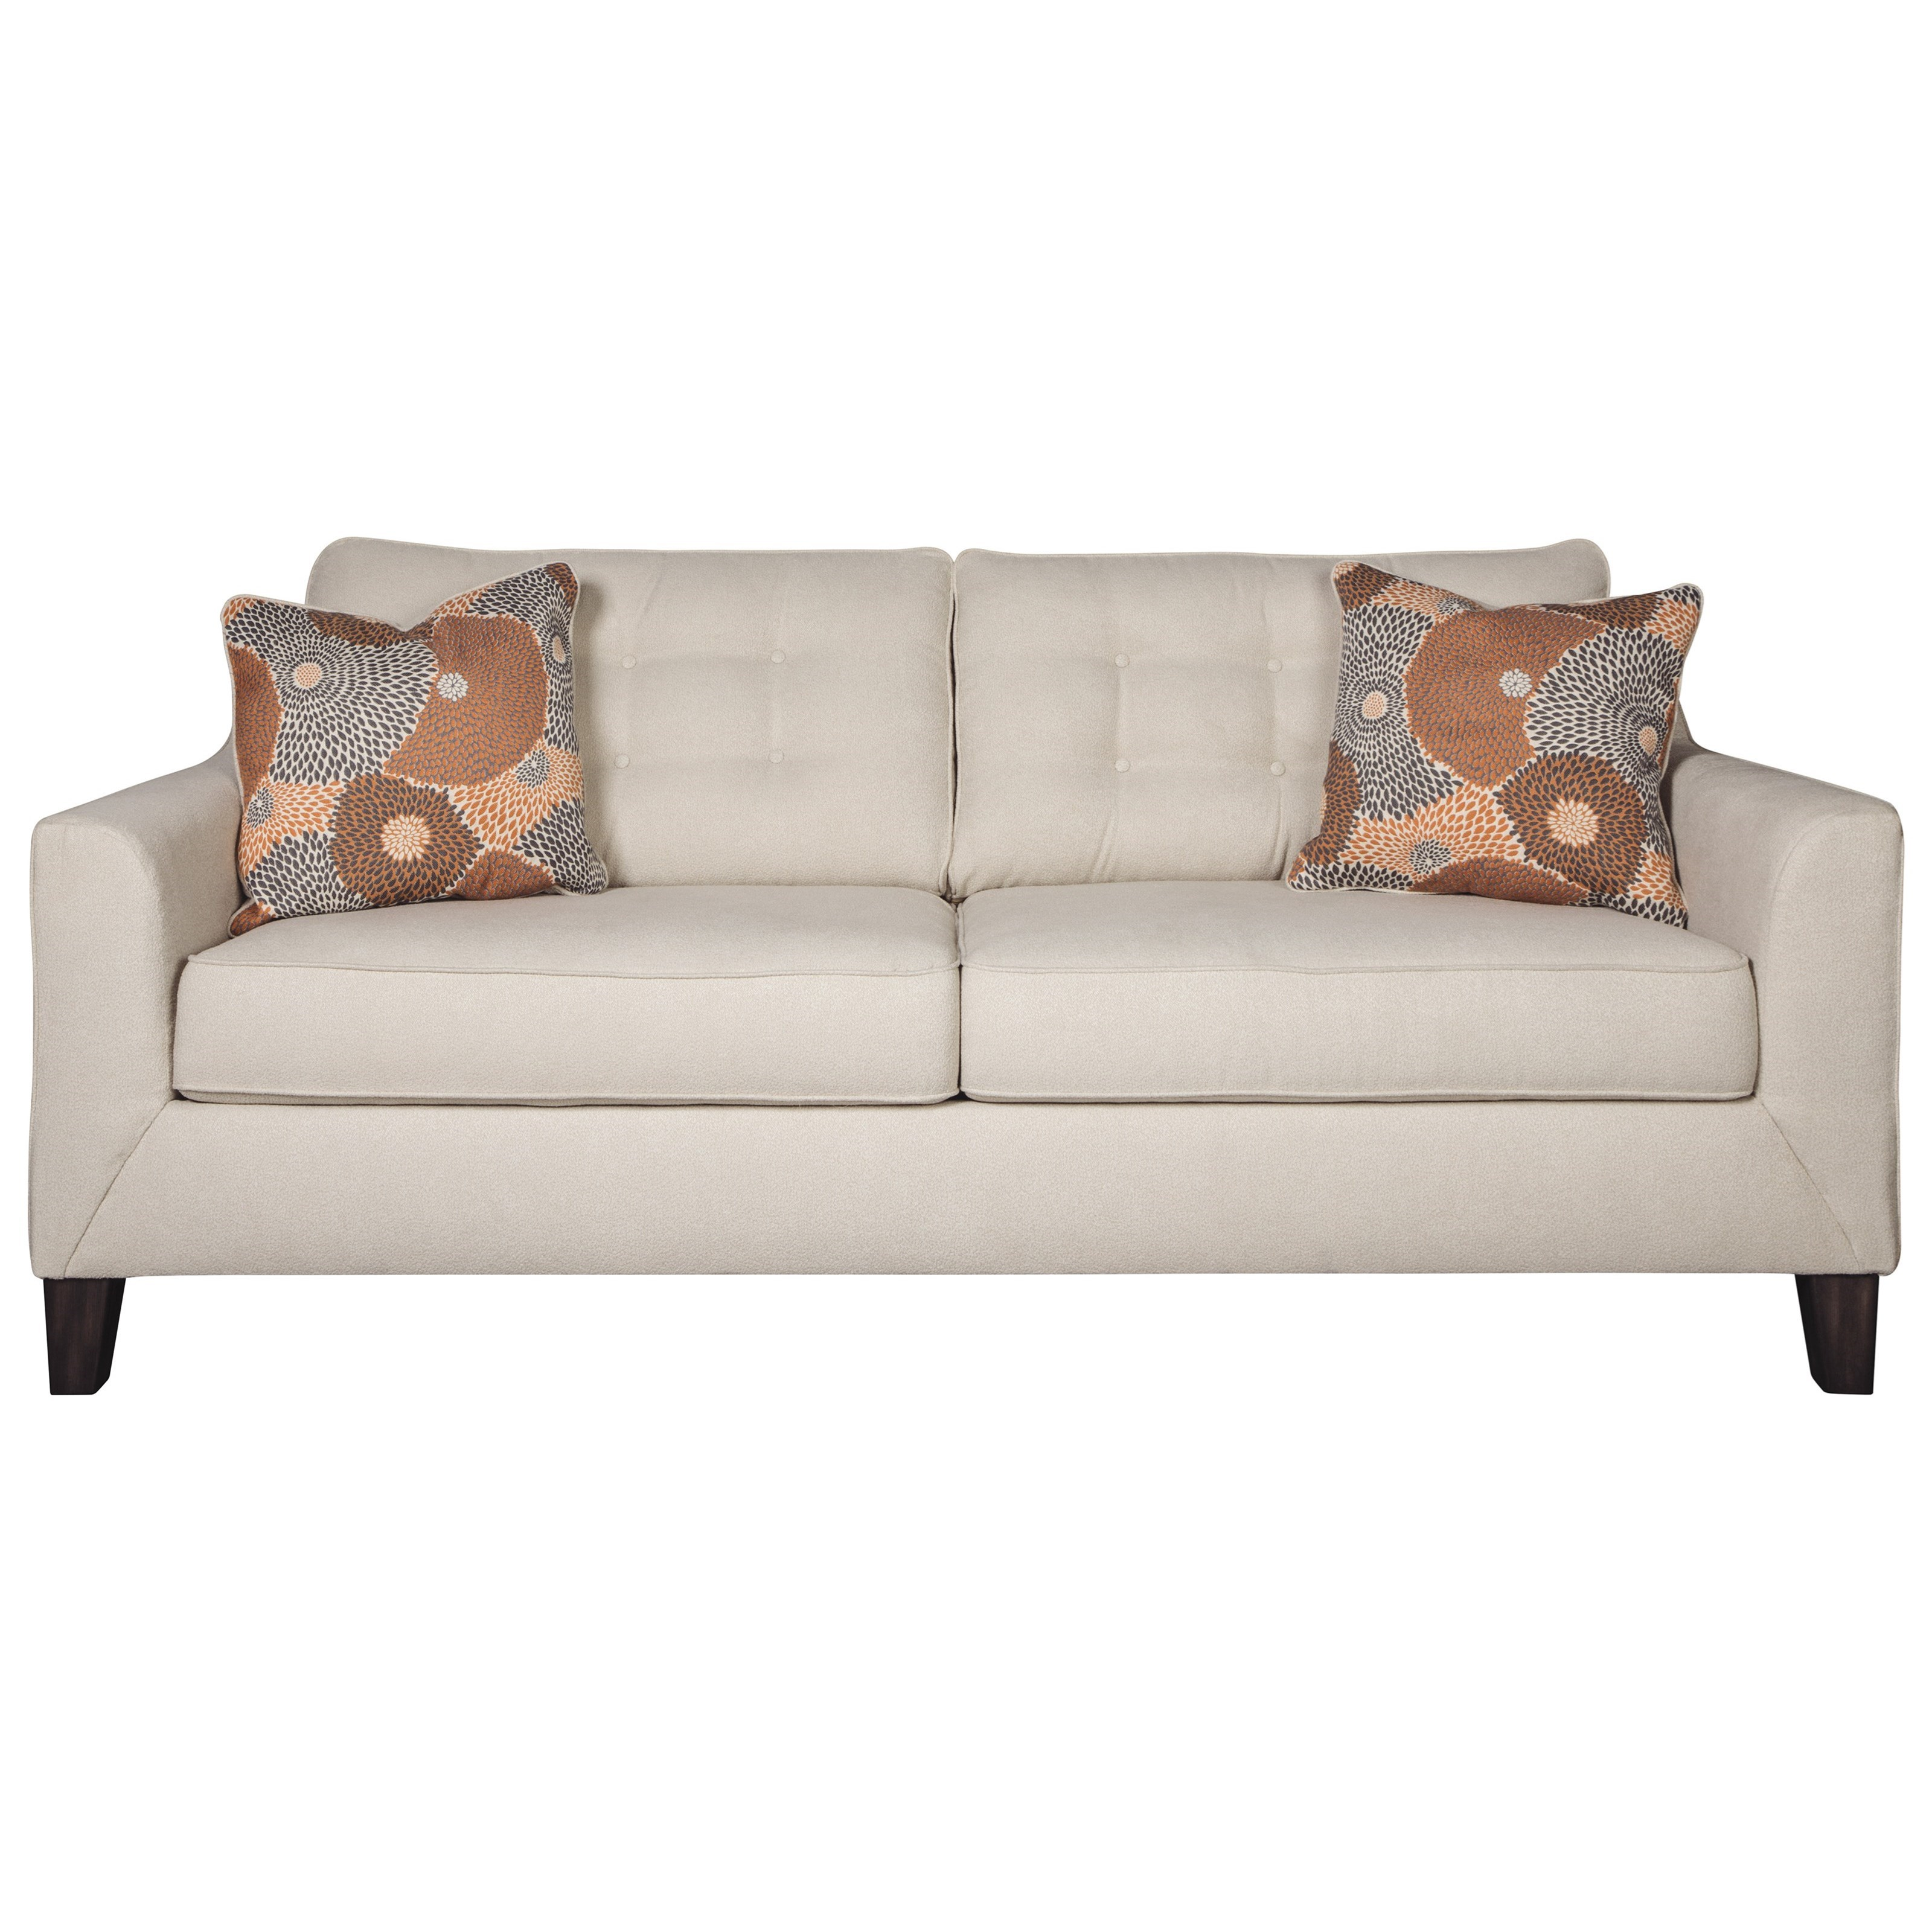 Benissa Sofa by Signature Design by Ashley at Lapeer Furniture & Mattress Center